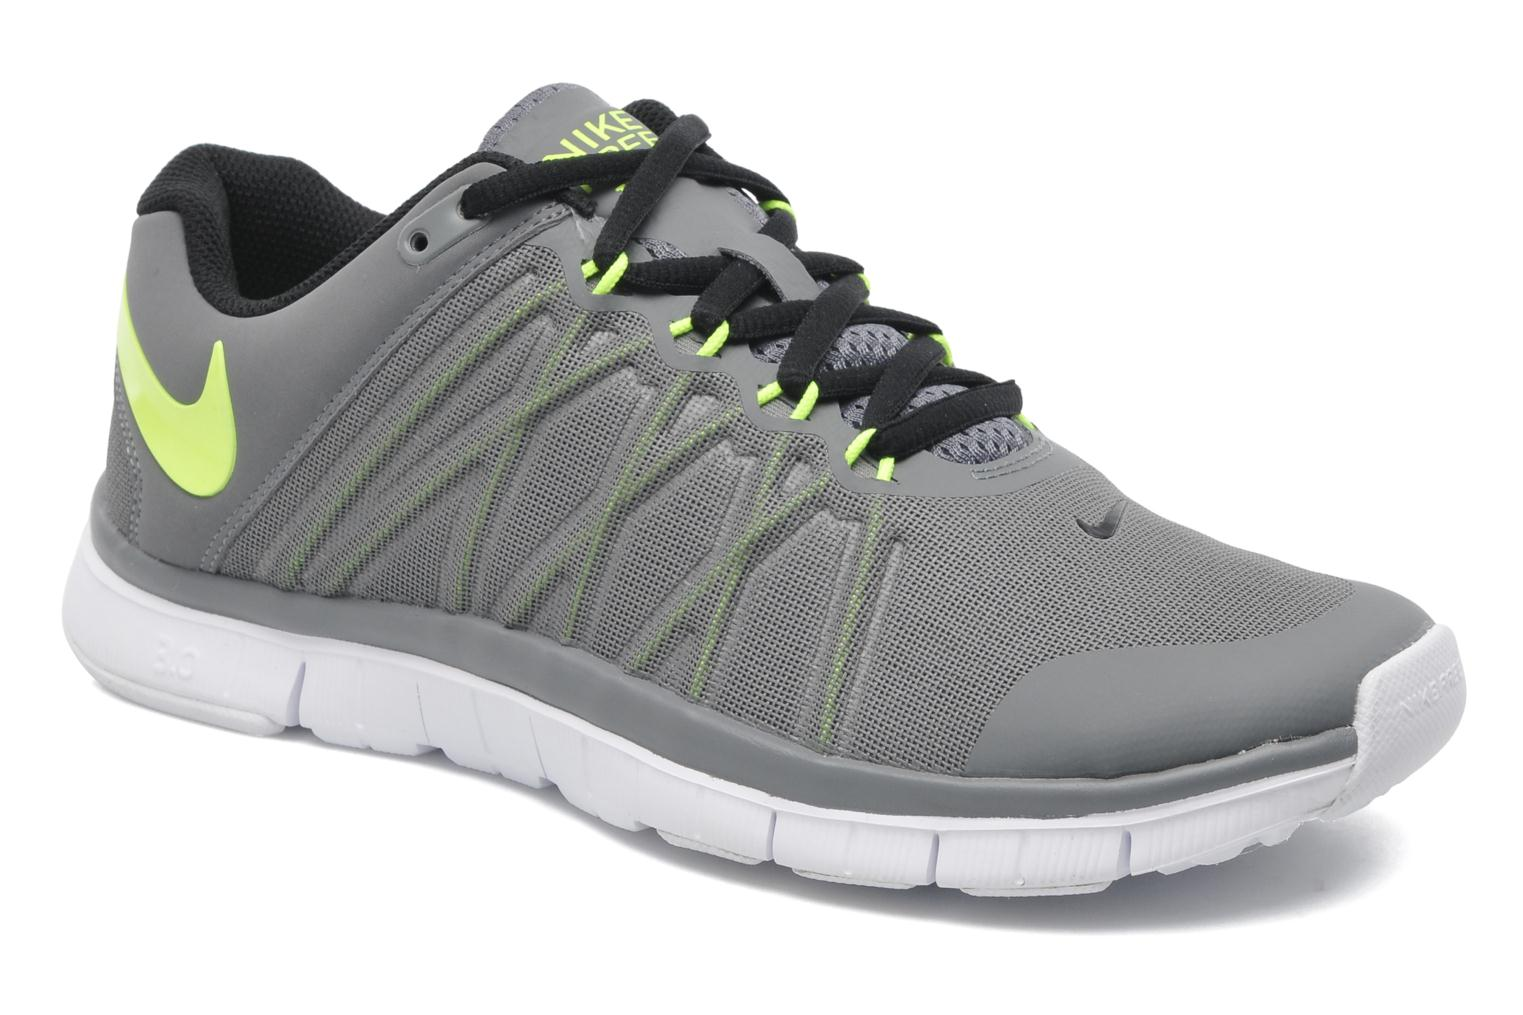 outlet store aaede 97307 ... cheap sport shoes nike nike free trainer 3.0 grey detailed view pair  view 87aae 5638c